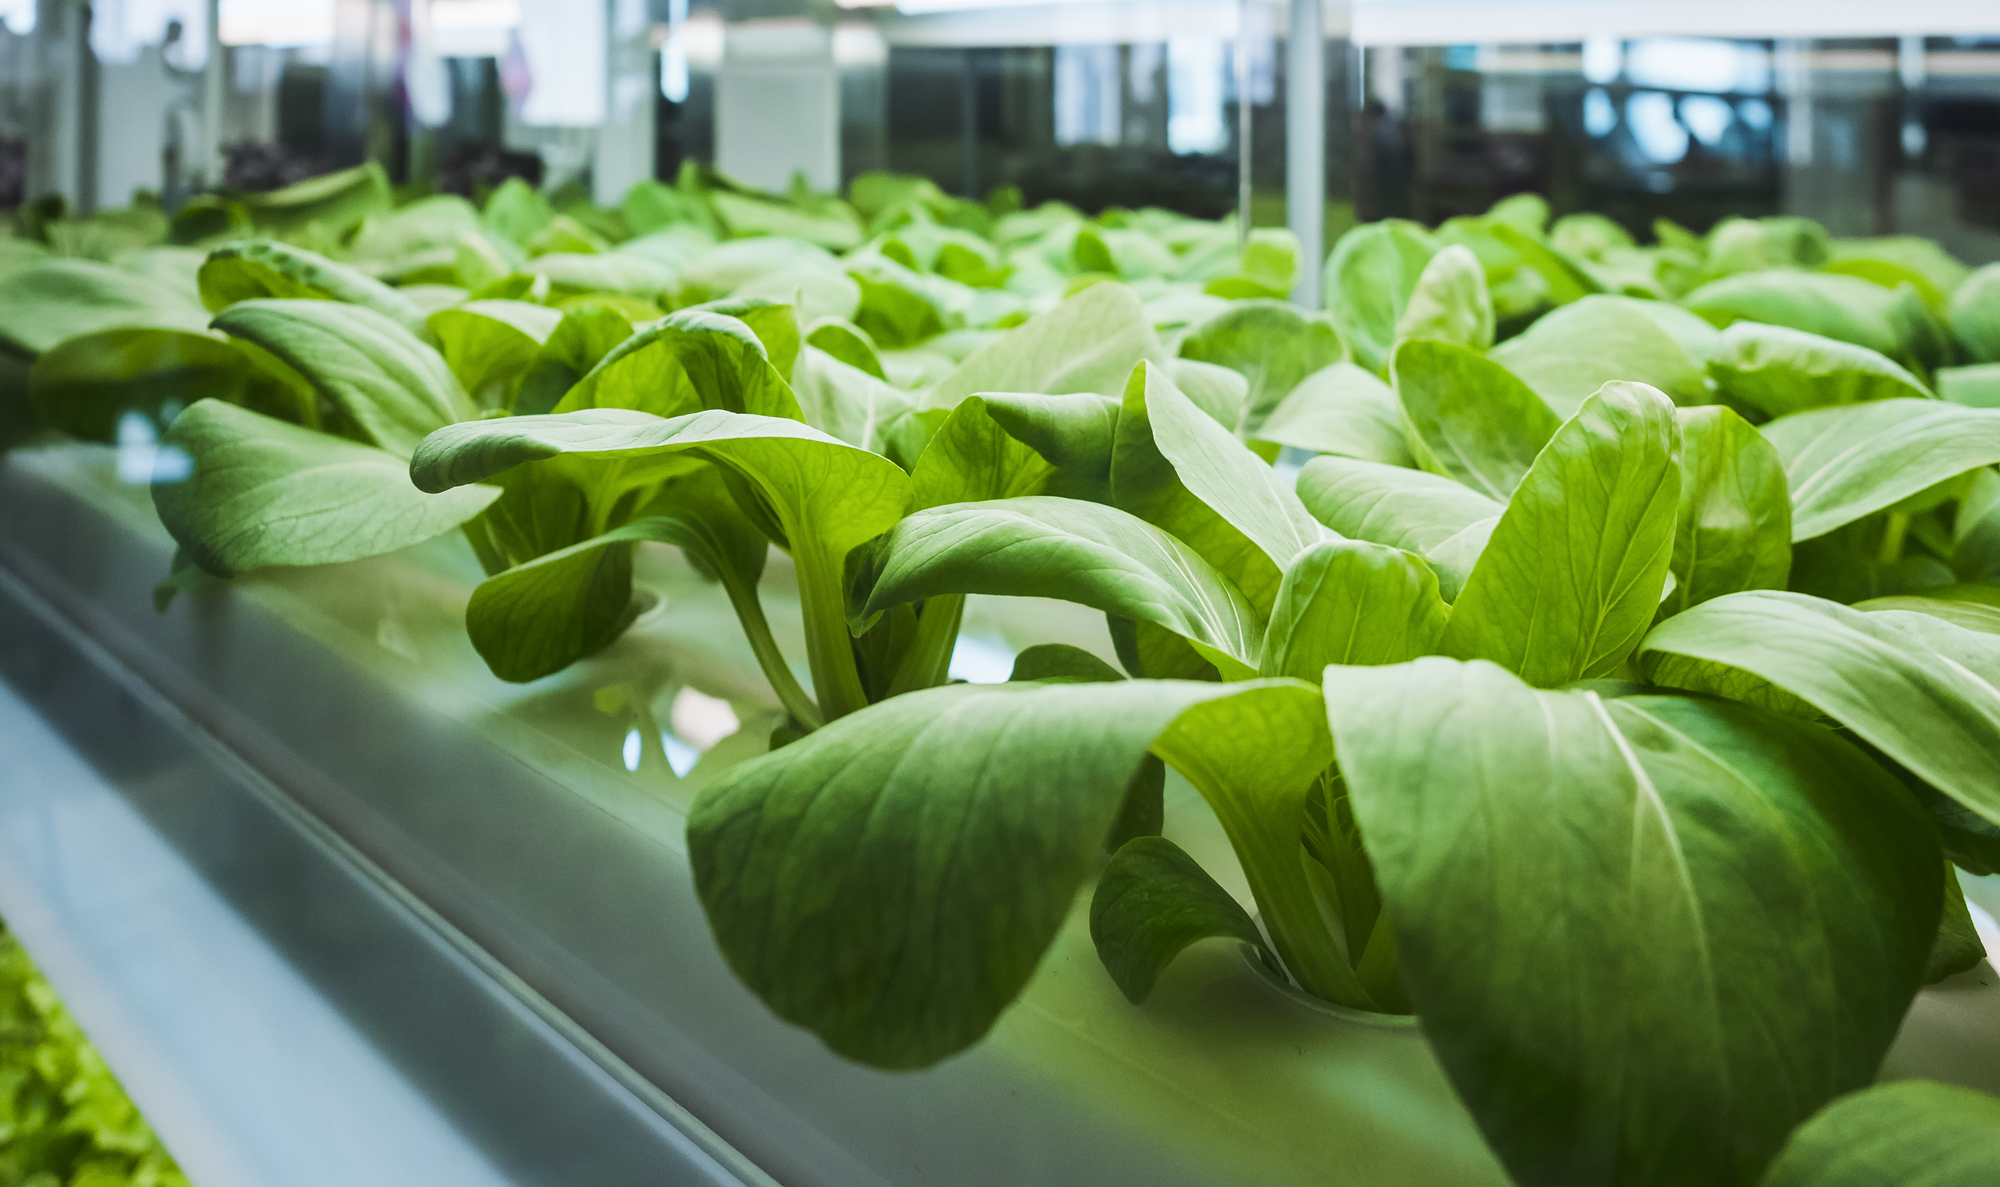 AeroFarms: Scaling Indoor Farming With New Smart Technologies